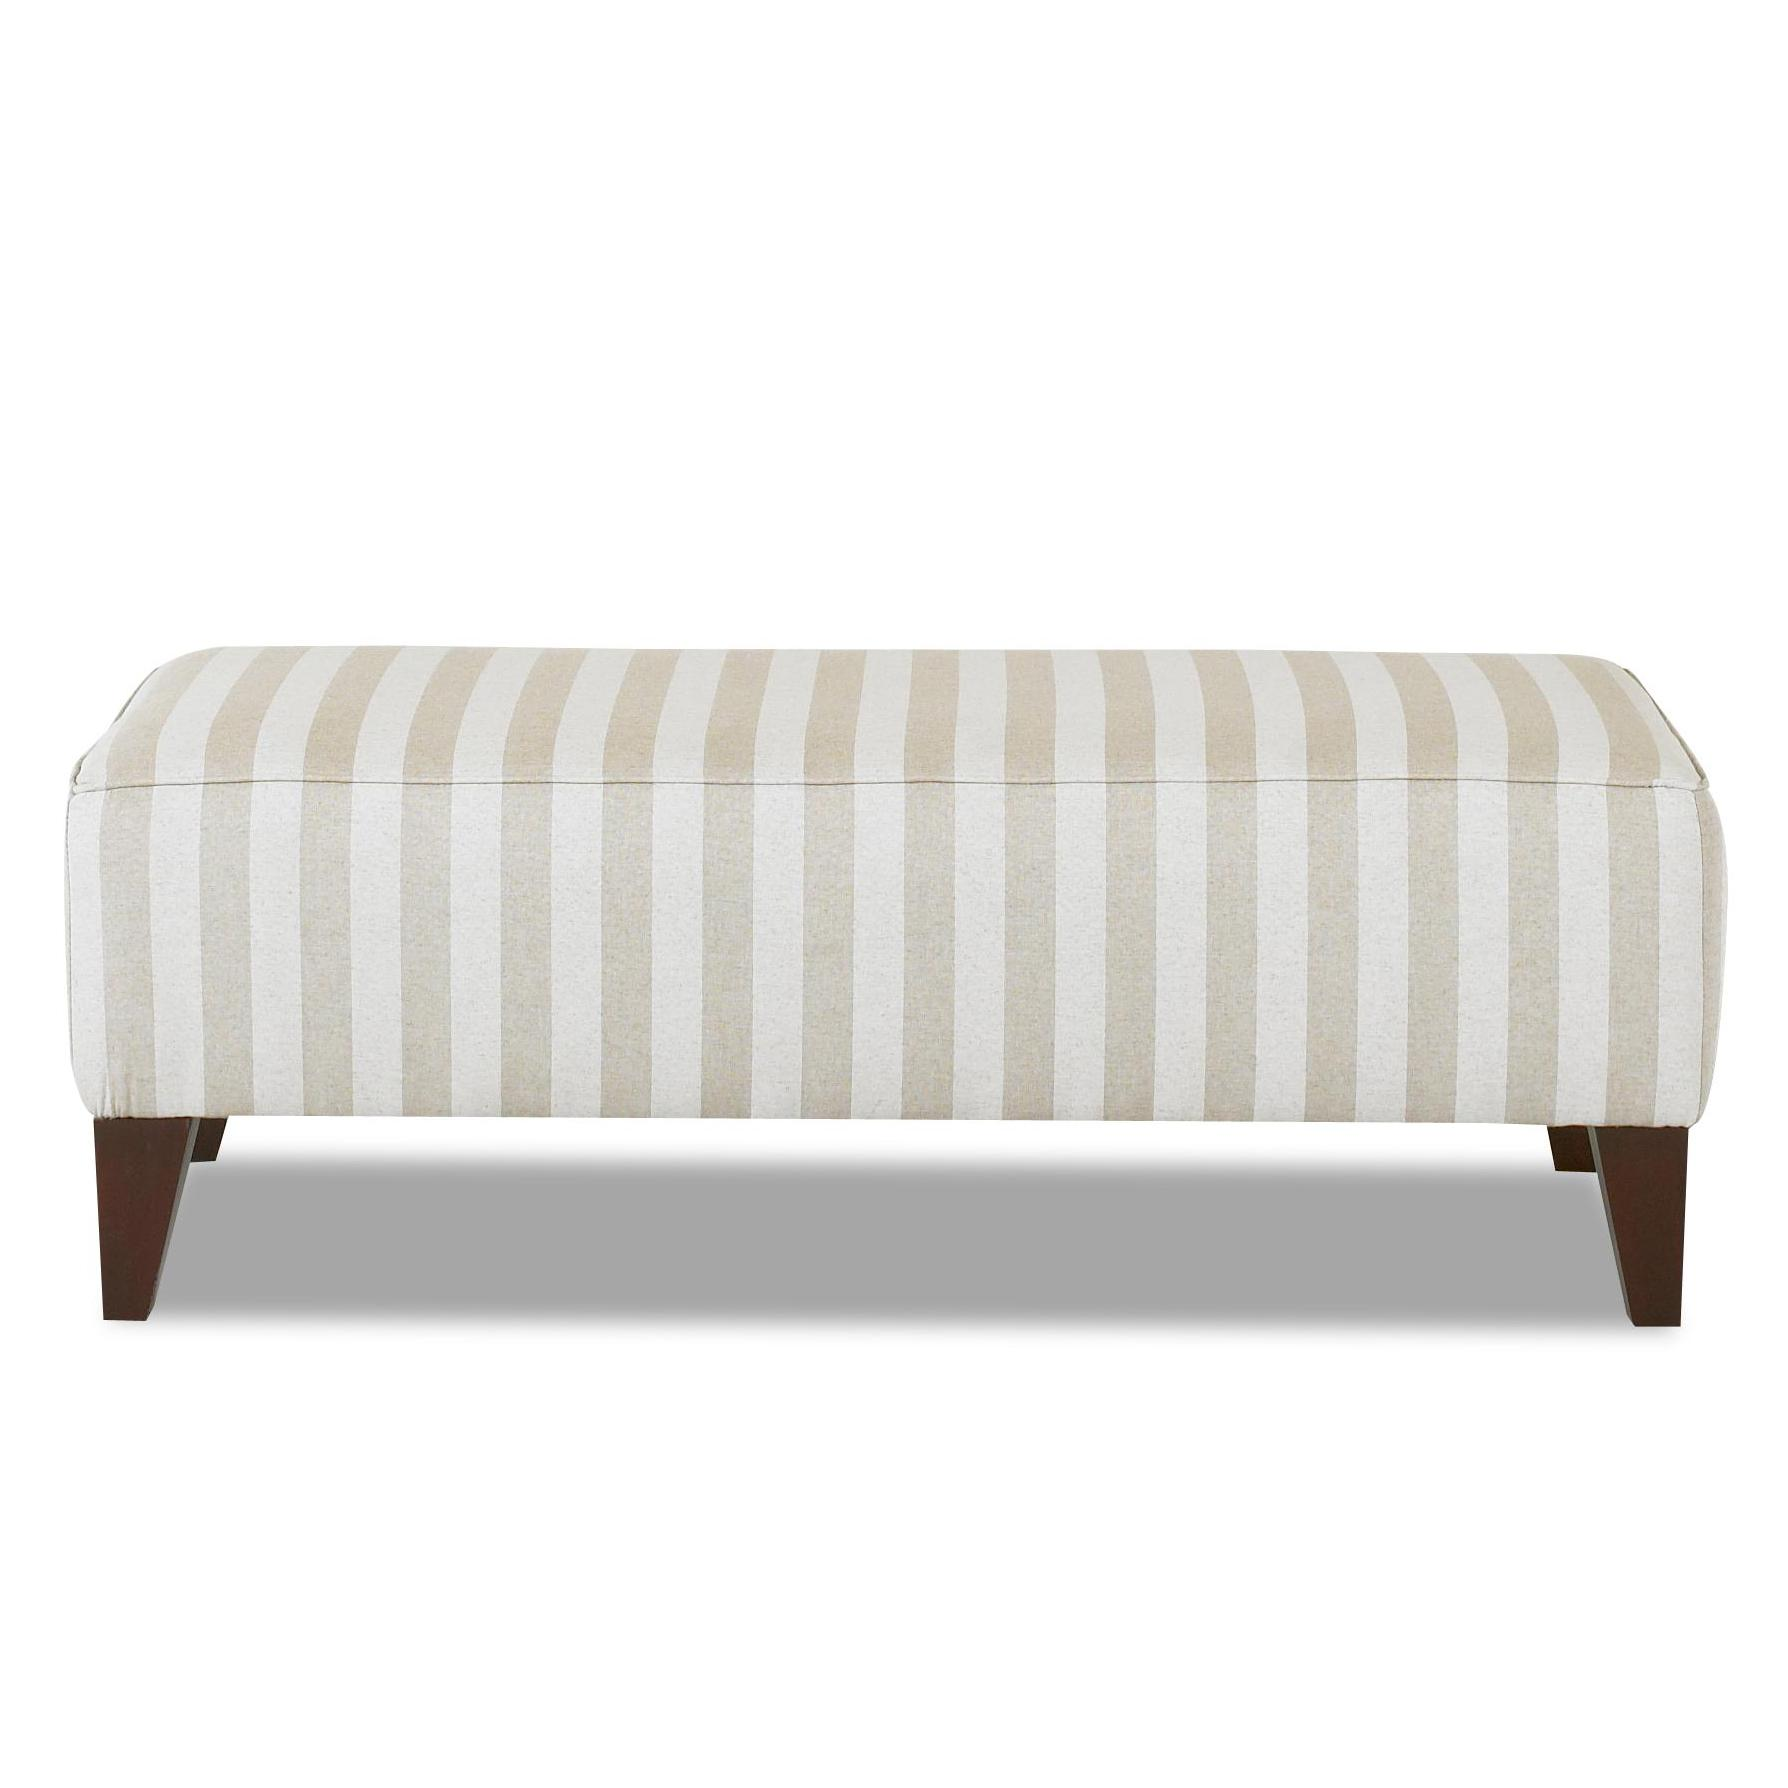 Klaussner Chairs and Accents Piano Ottoman - Item Number: 9848OTTO